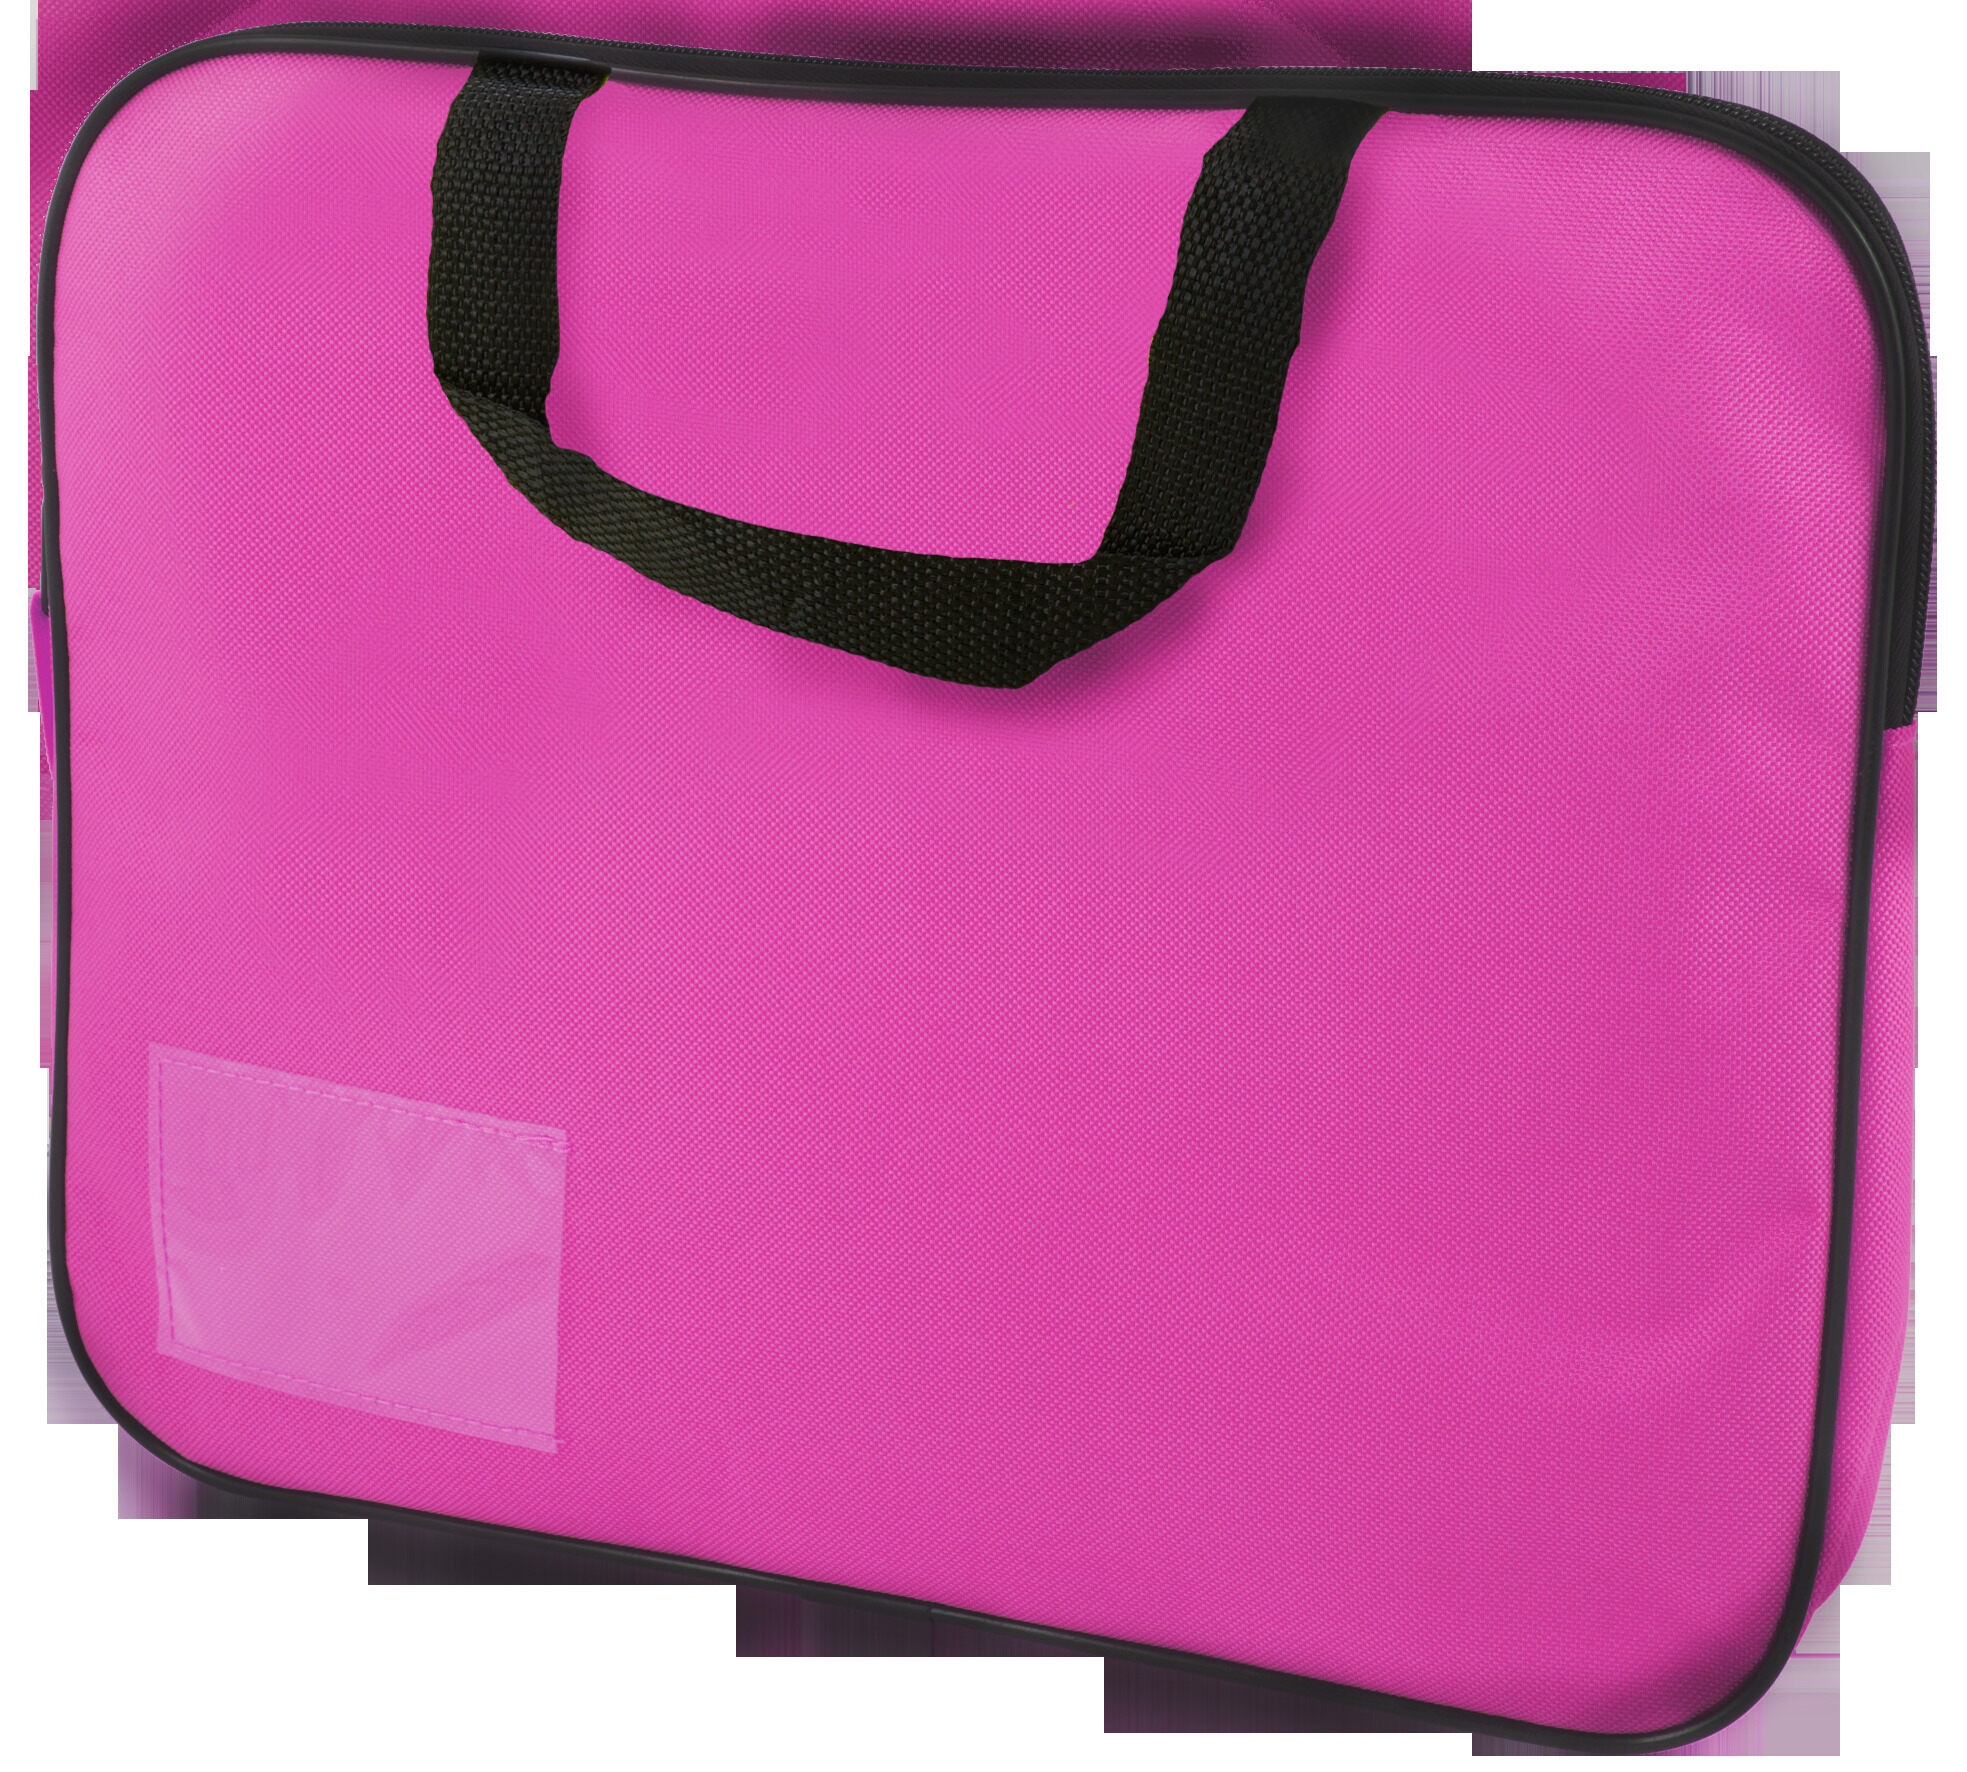 Homework Bag (Book Bag) With Handle - Pink